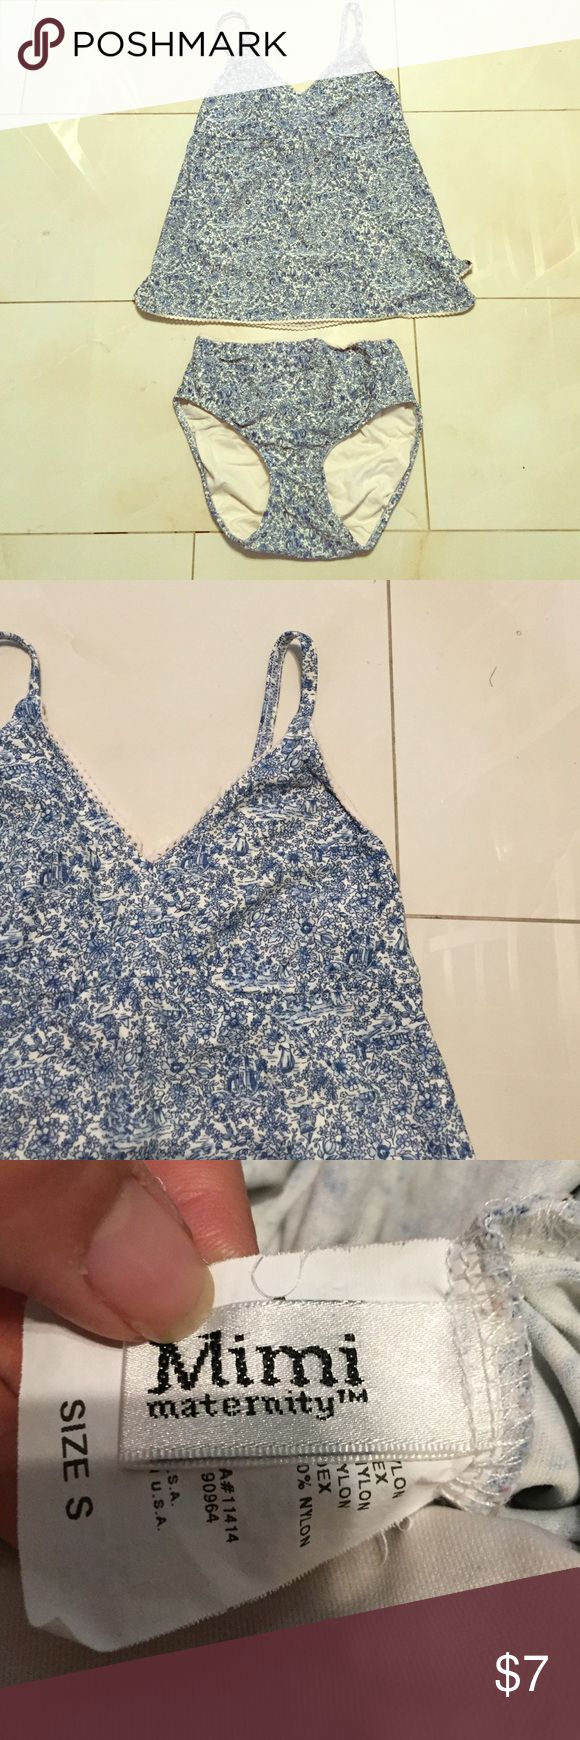 Mimi Maternity 2 piece swim suit Really cute blue and white tankini for soon to be mamas with a bump :) size small Swim Bikinis